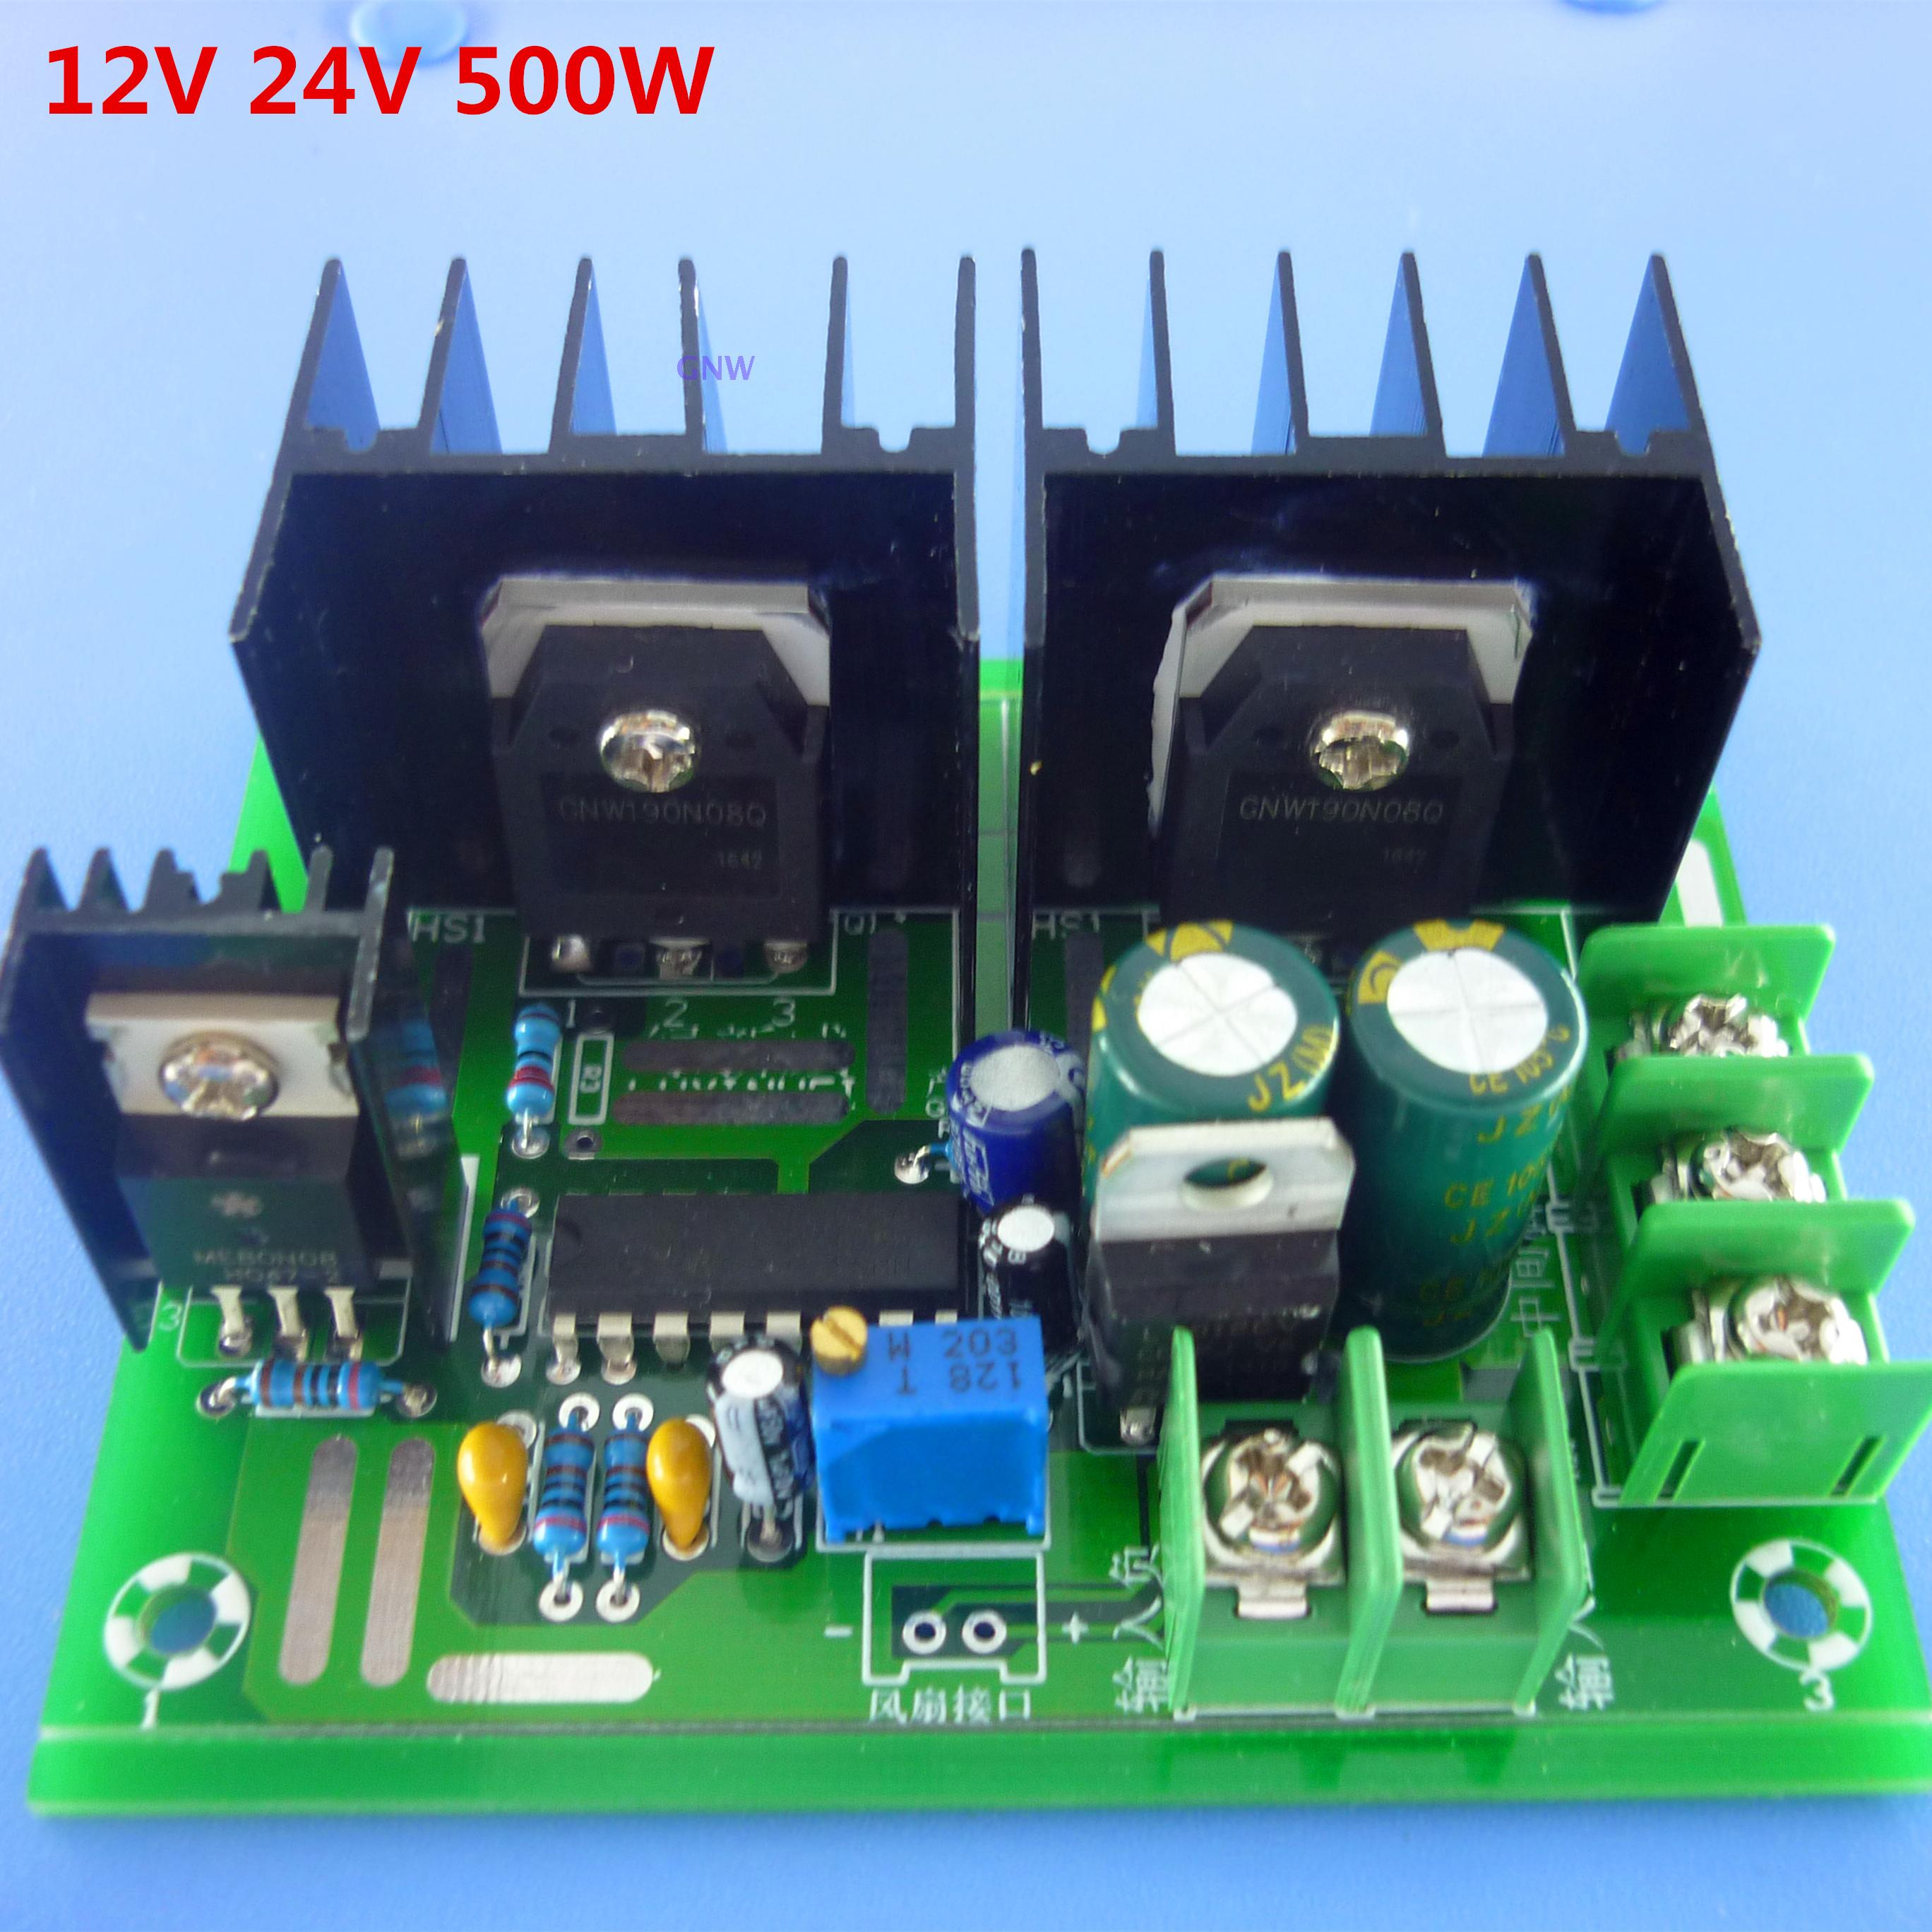 Low frequency inverter, 50HZ core transformer, inverter drive board, power frequency inverter drive circuit board inverter welding machine 22 3 2pcs lot board transformer eer42x15 compatible eer43x15